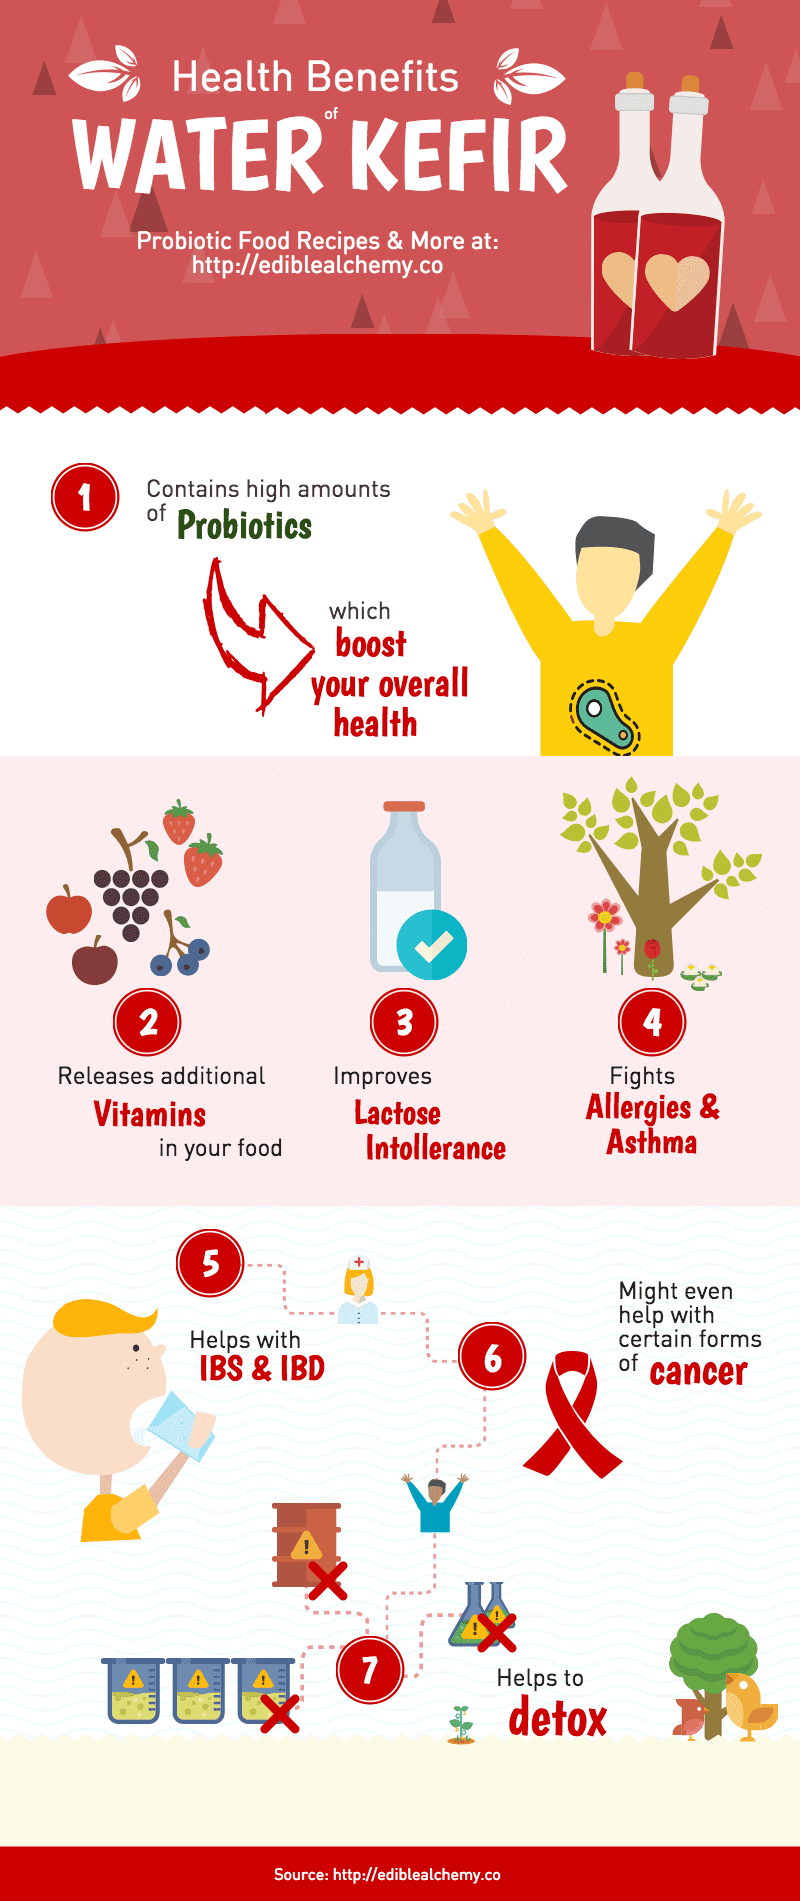 Water Kefir Health Benefits Infographic